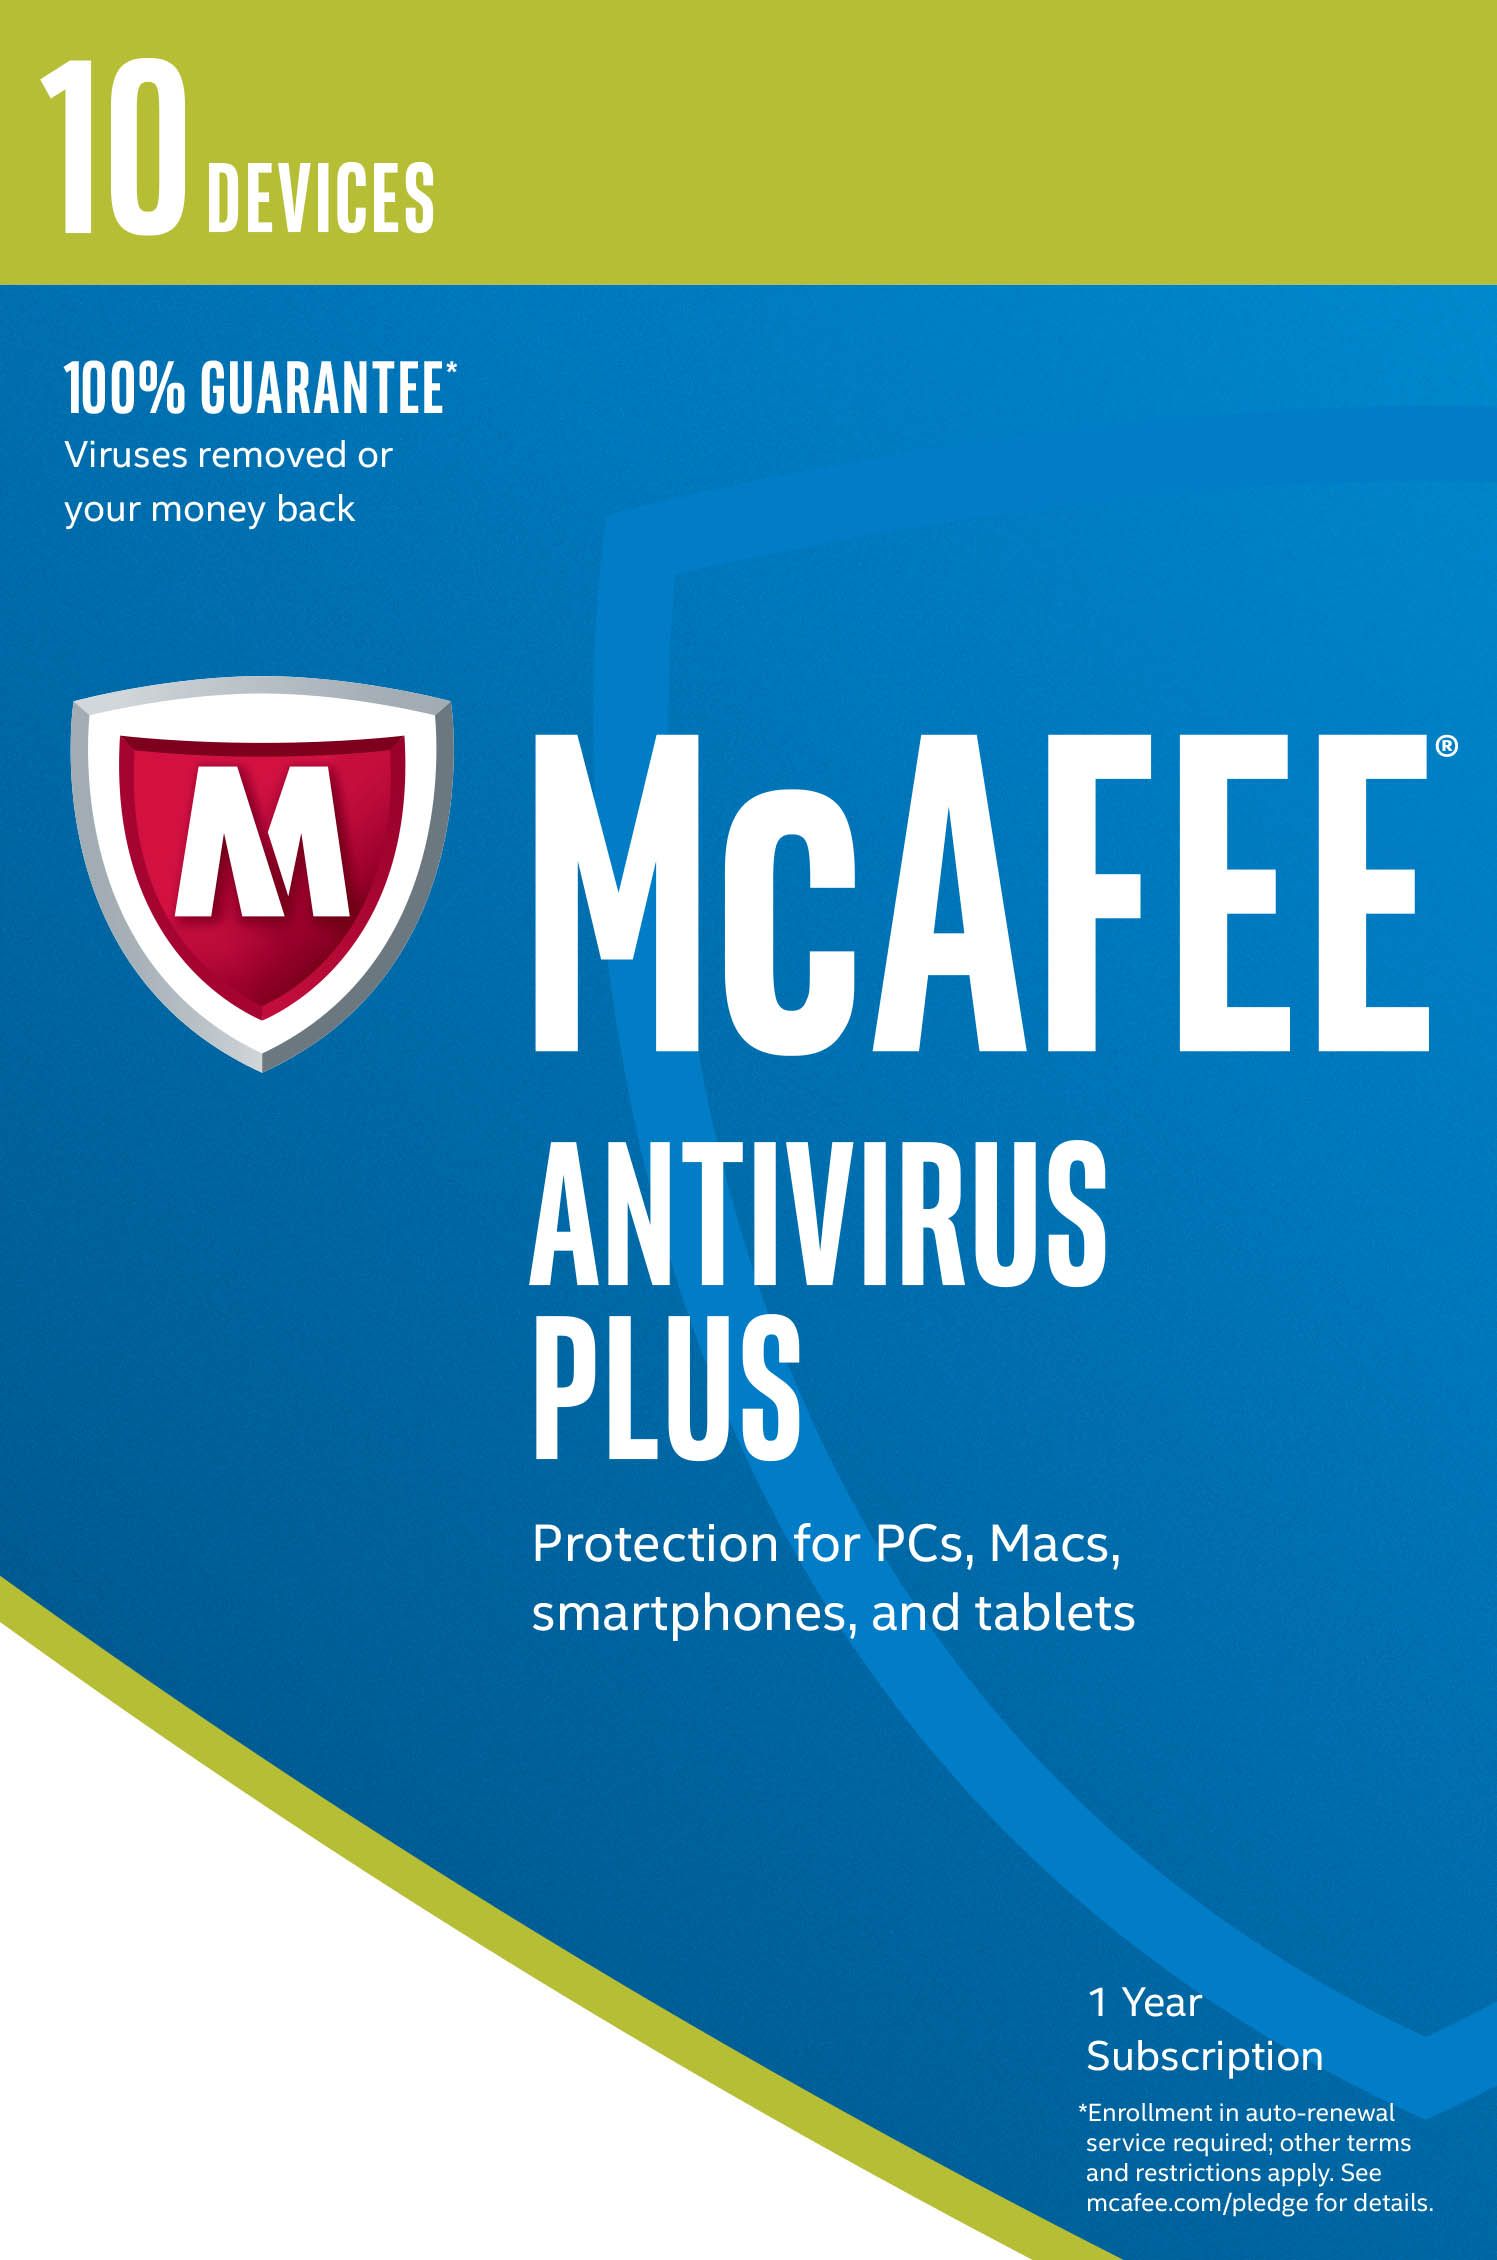 Mcafee virus scan plus 2017 addiction bin